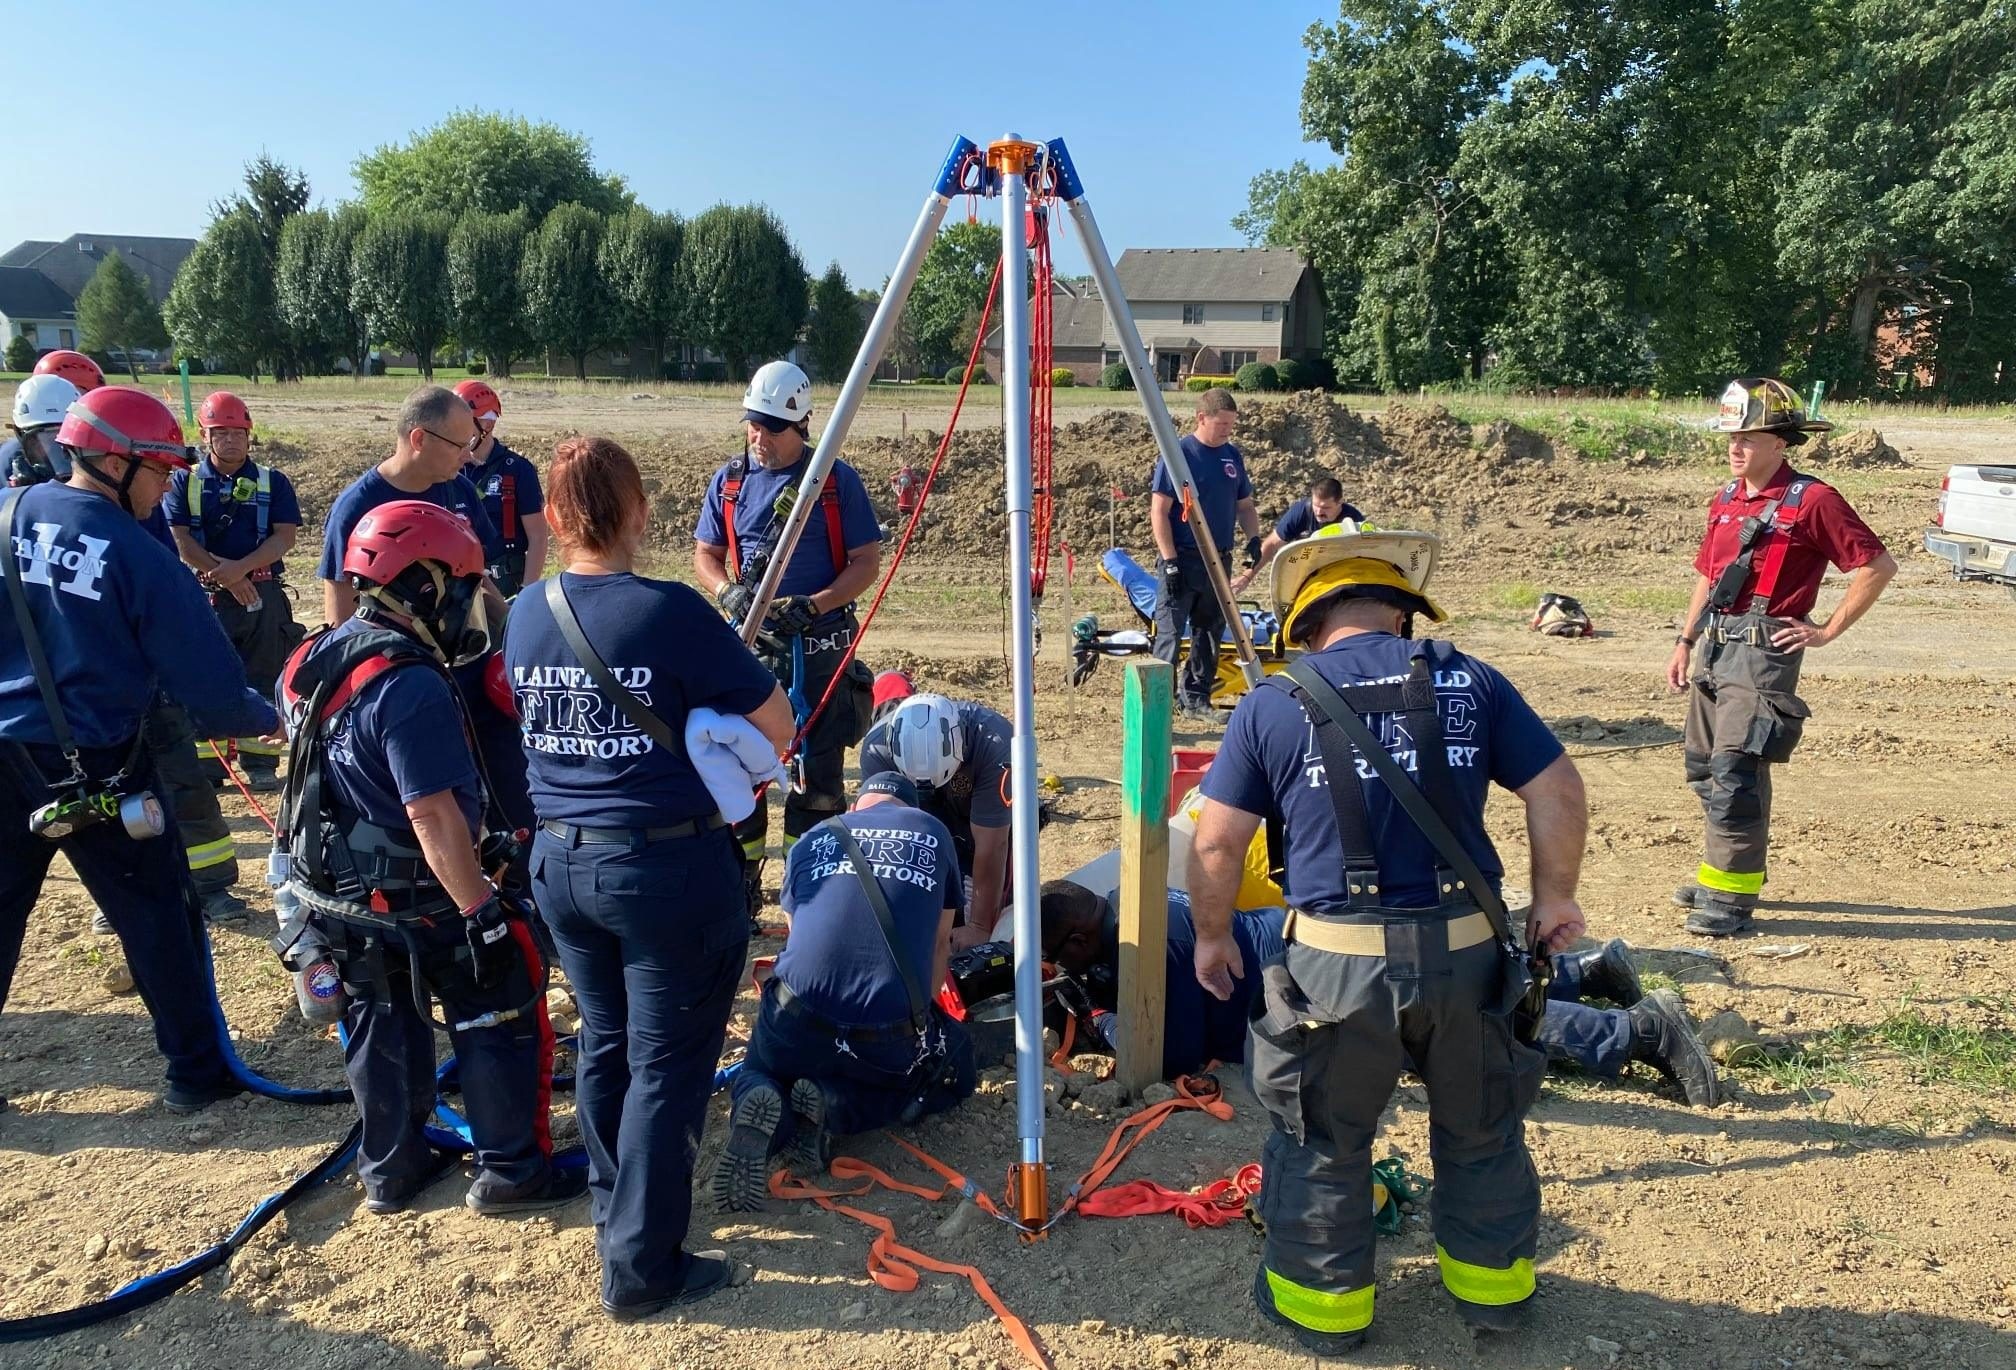 Worker rescued from 20 feet under ground after suffering suspected seizure while inspecting sewer system in Plainfield